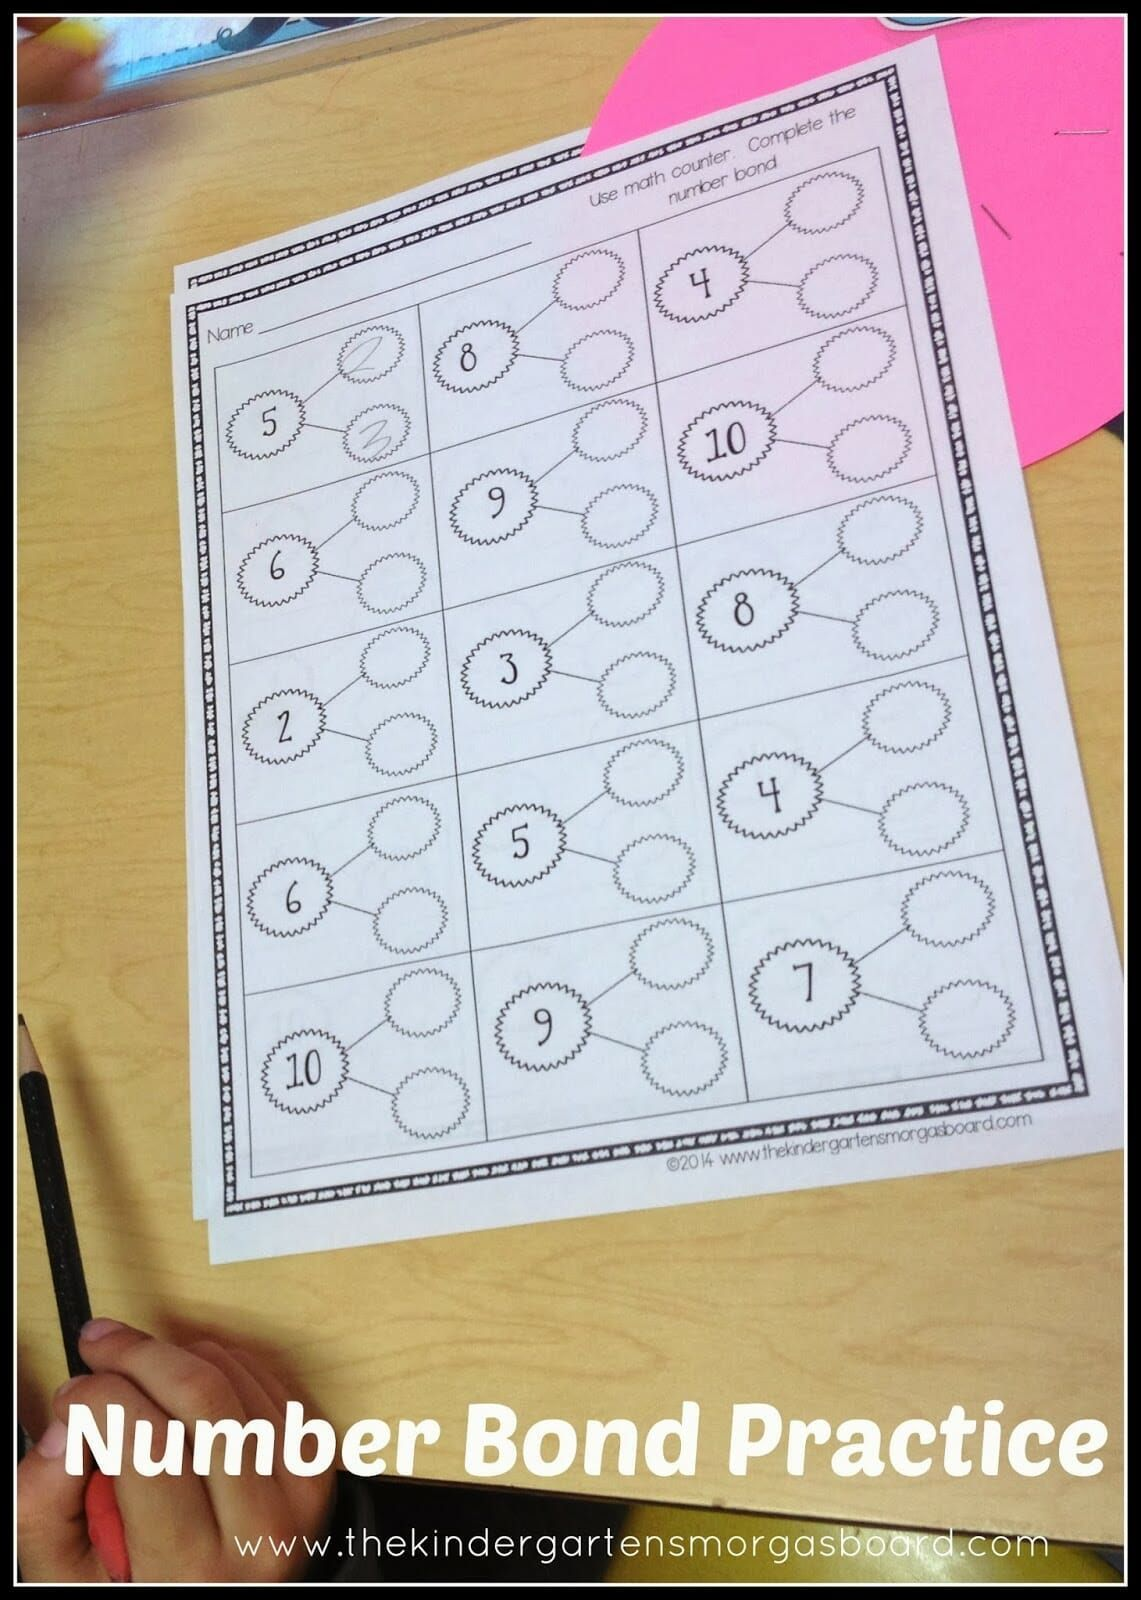 A Kindergarten Lesson Showing How To Use Number Bonds To